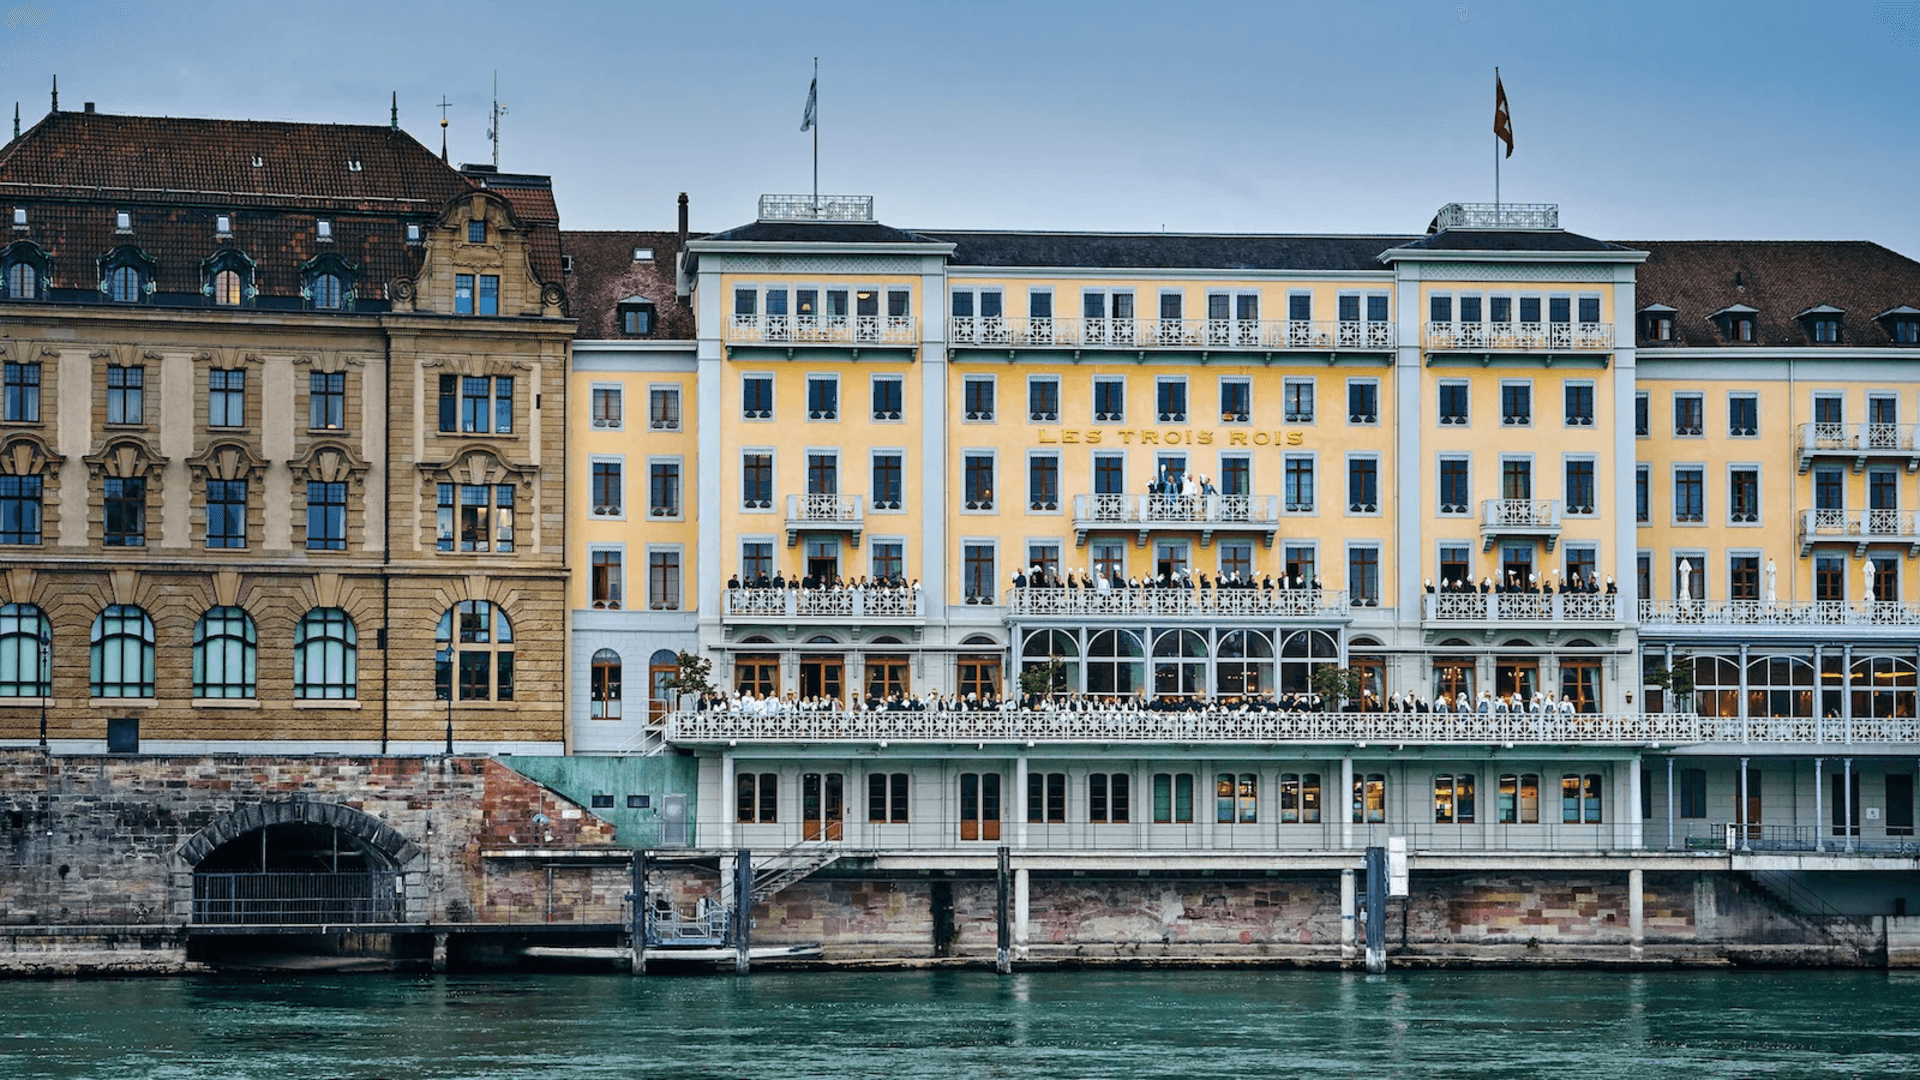 Hotel Les Trois Rois with its beautiful balcony overlooking the river Rhine